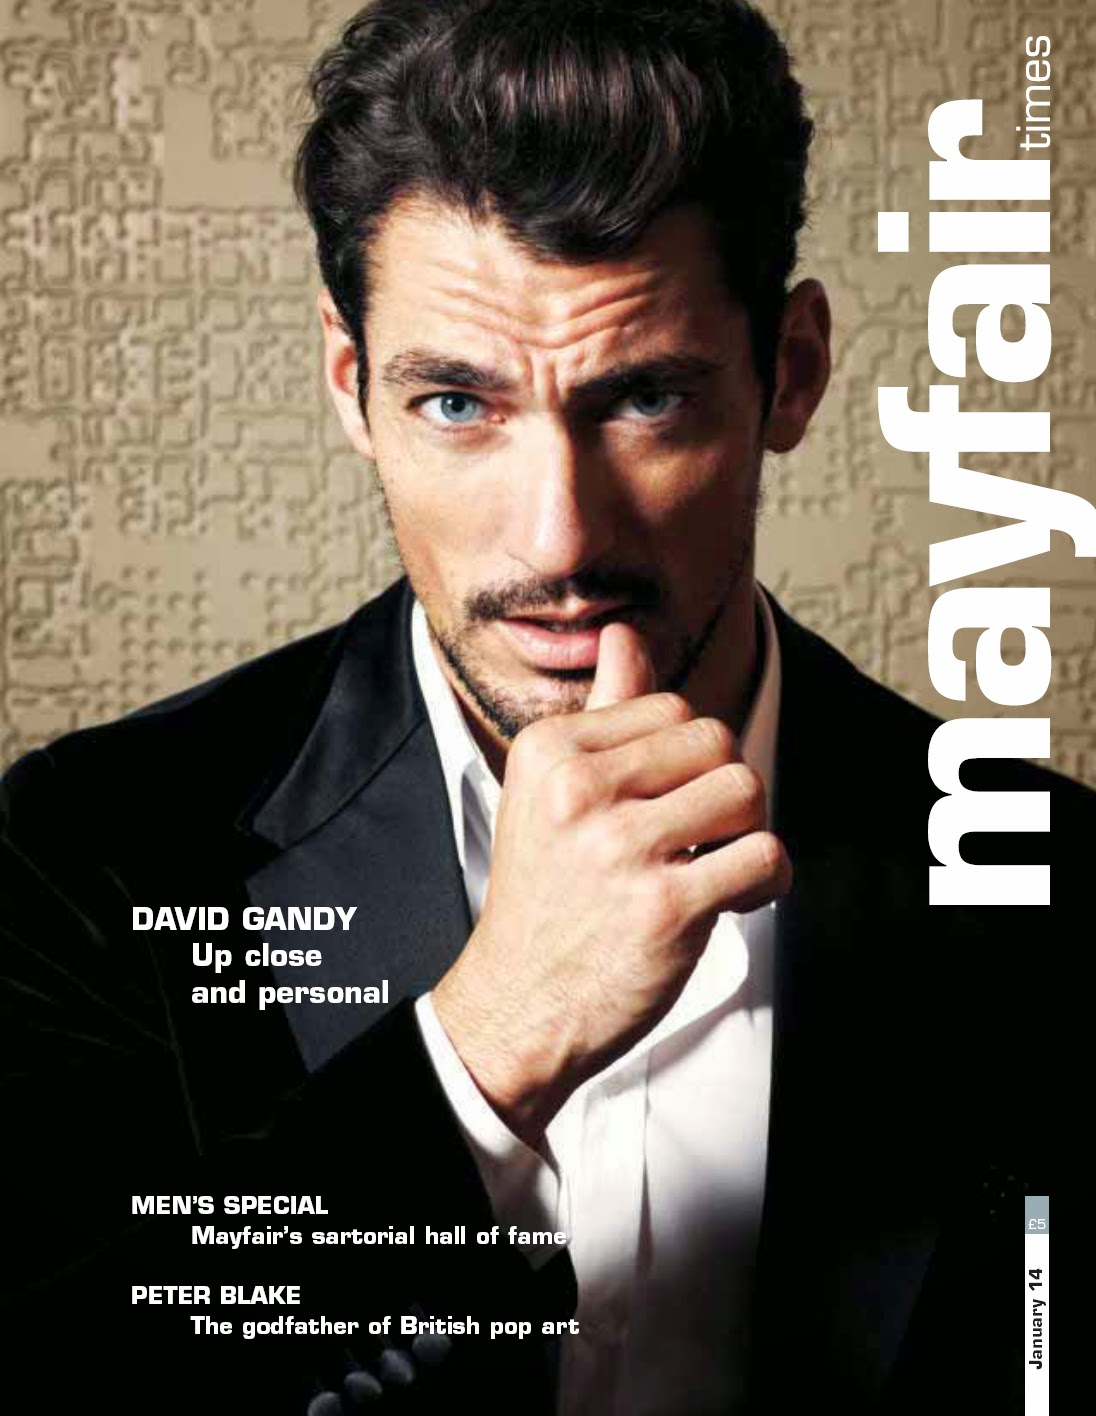 Girlfriend David Gandy 2014